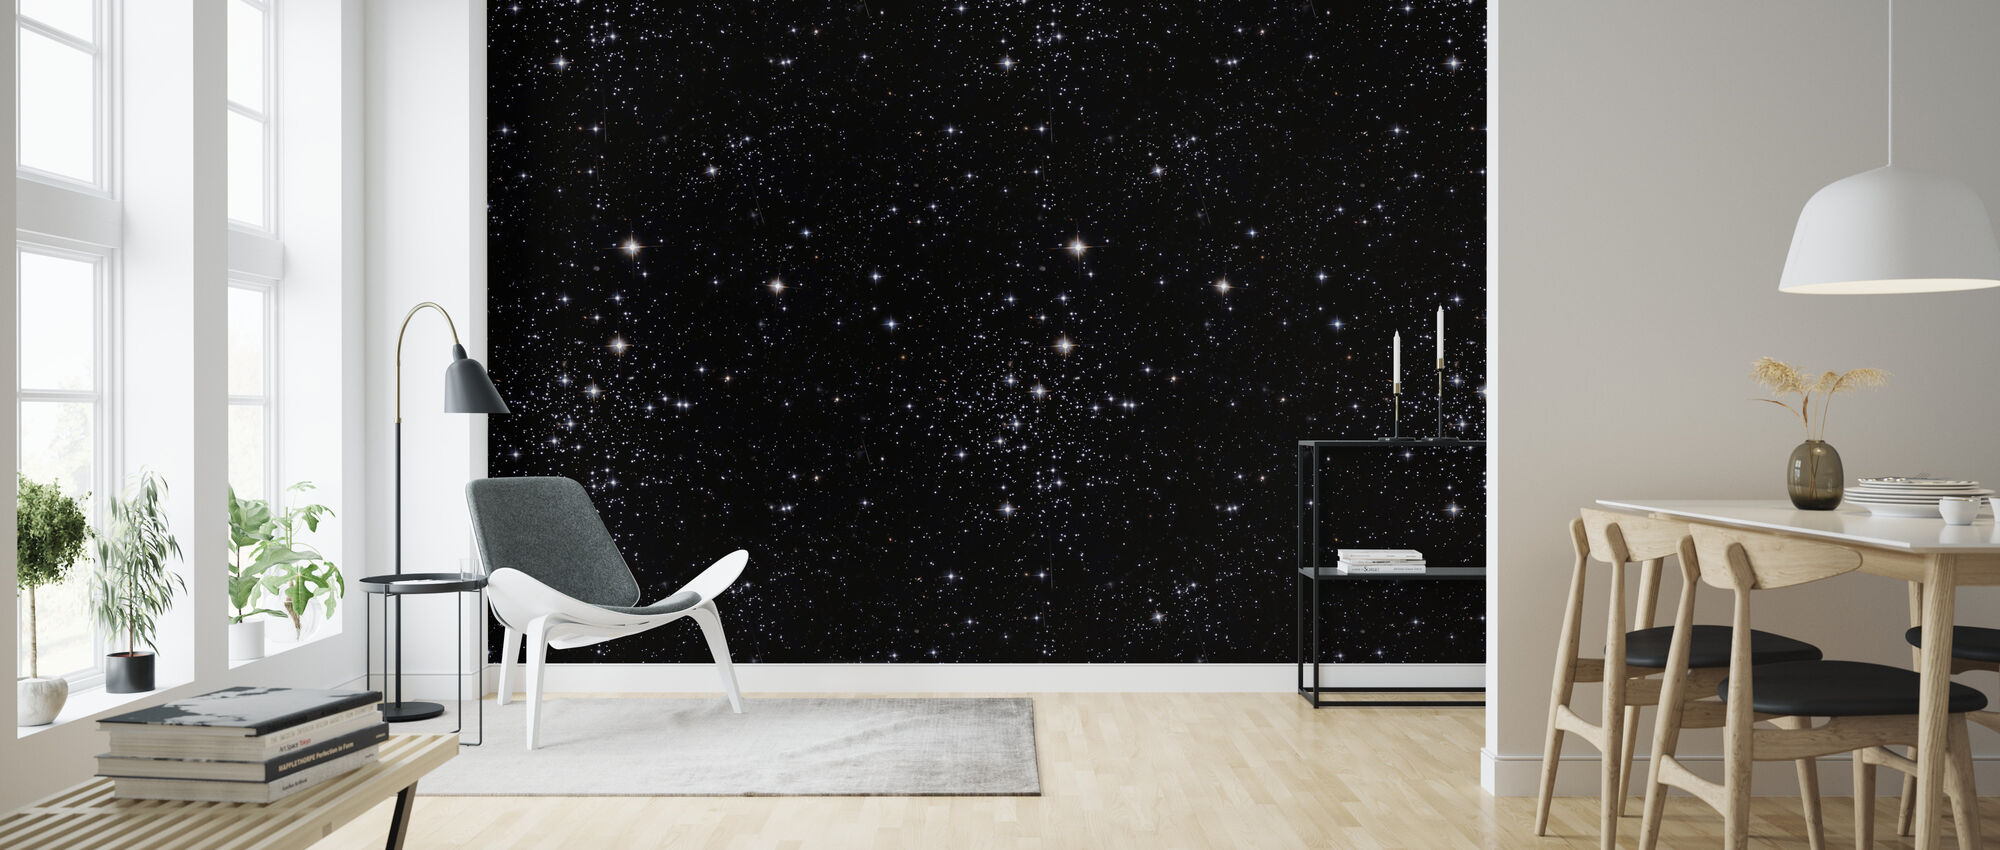 Star Night - Wallpaper - Living Room